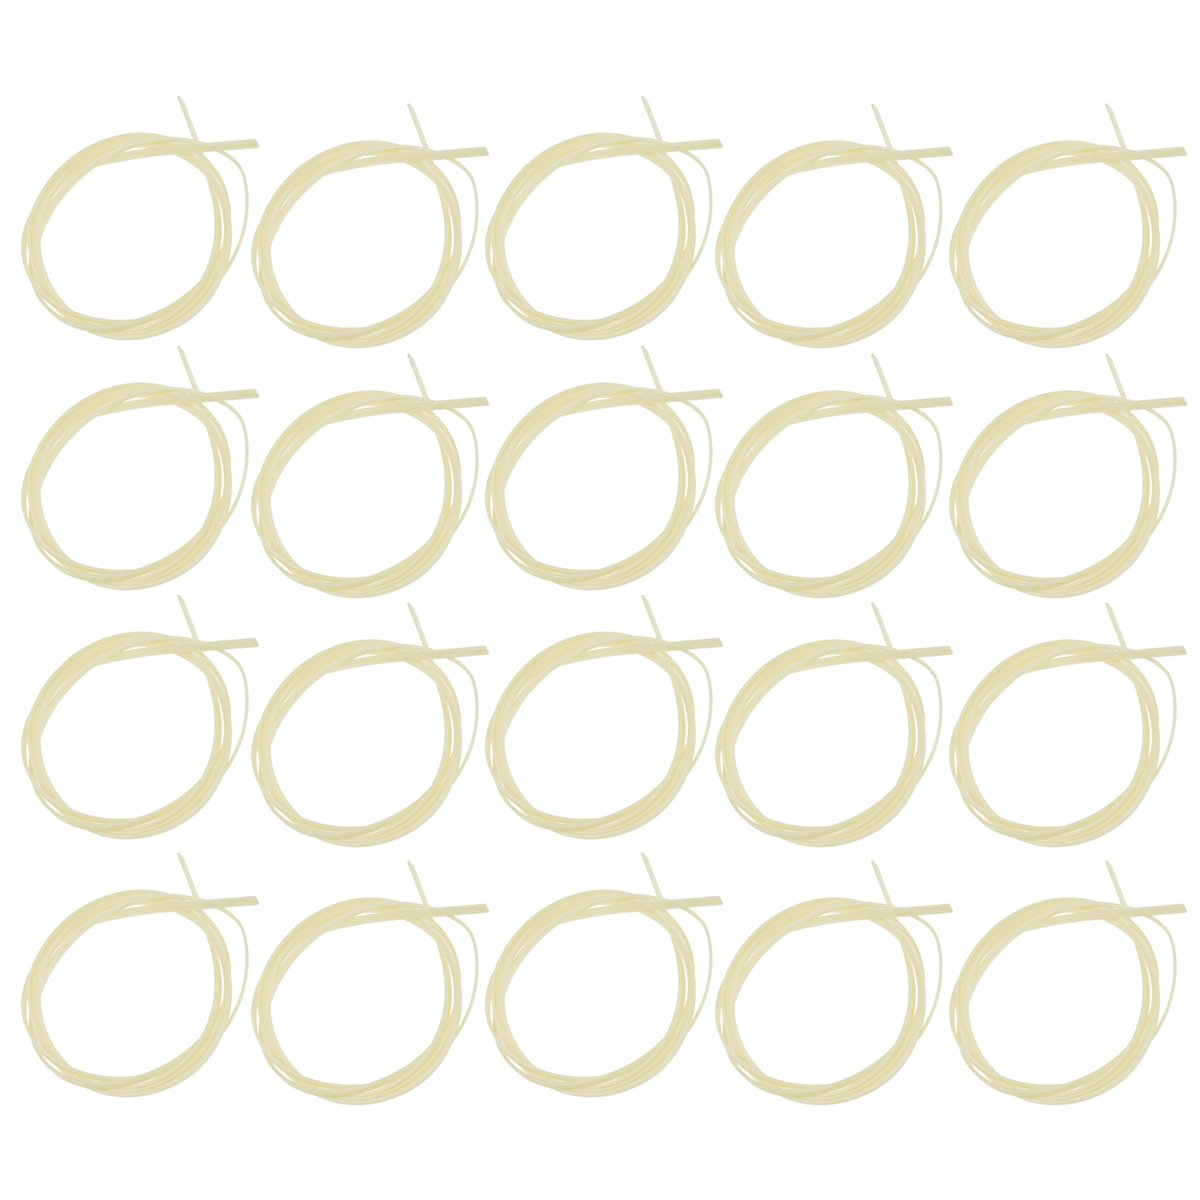 Kmise Guitar Binding Purfling Strip for Luthier Diy Project Supplies ABS Plastic 1650 4 1.5mm 20 Pcs